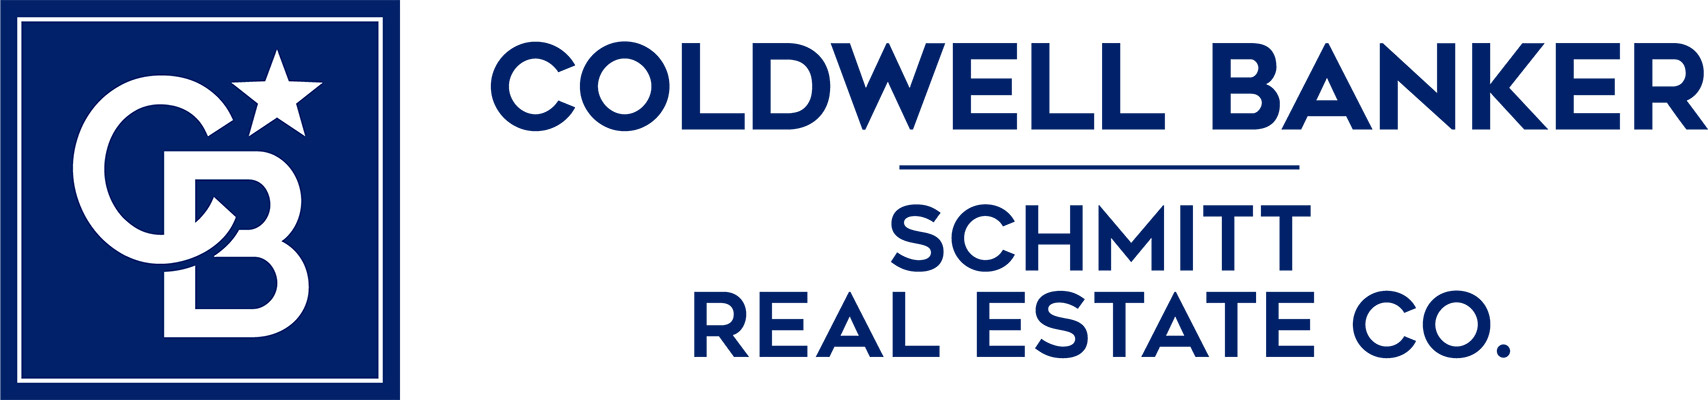 Roy Haase - Coldwell Banker Logo